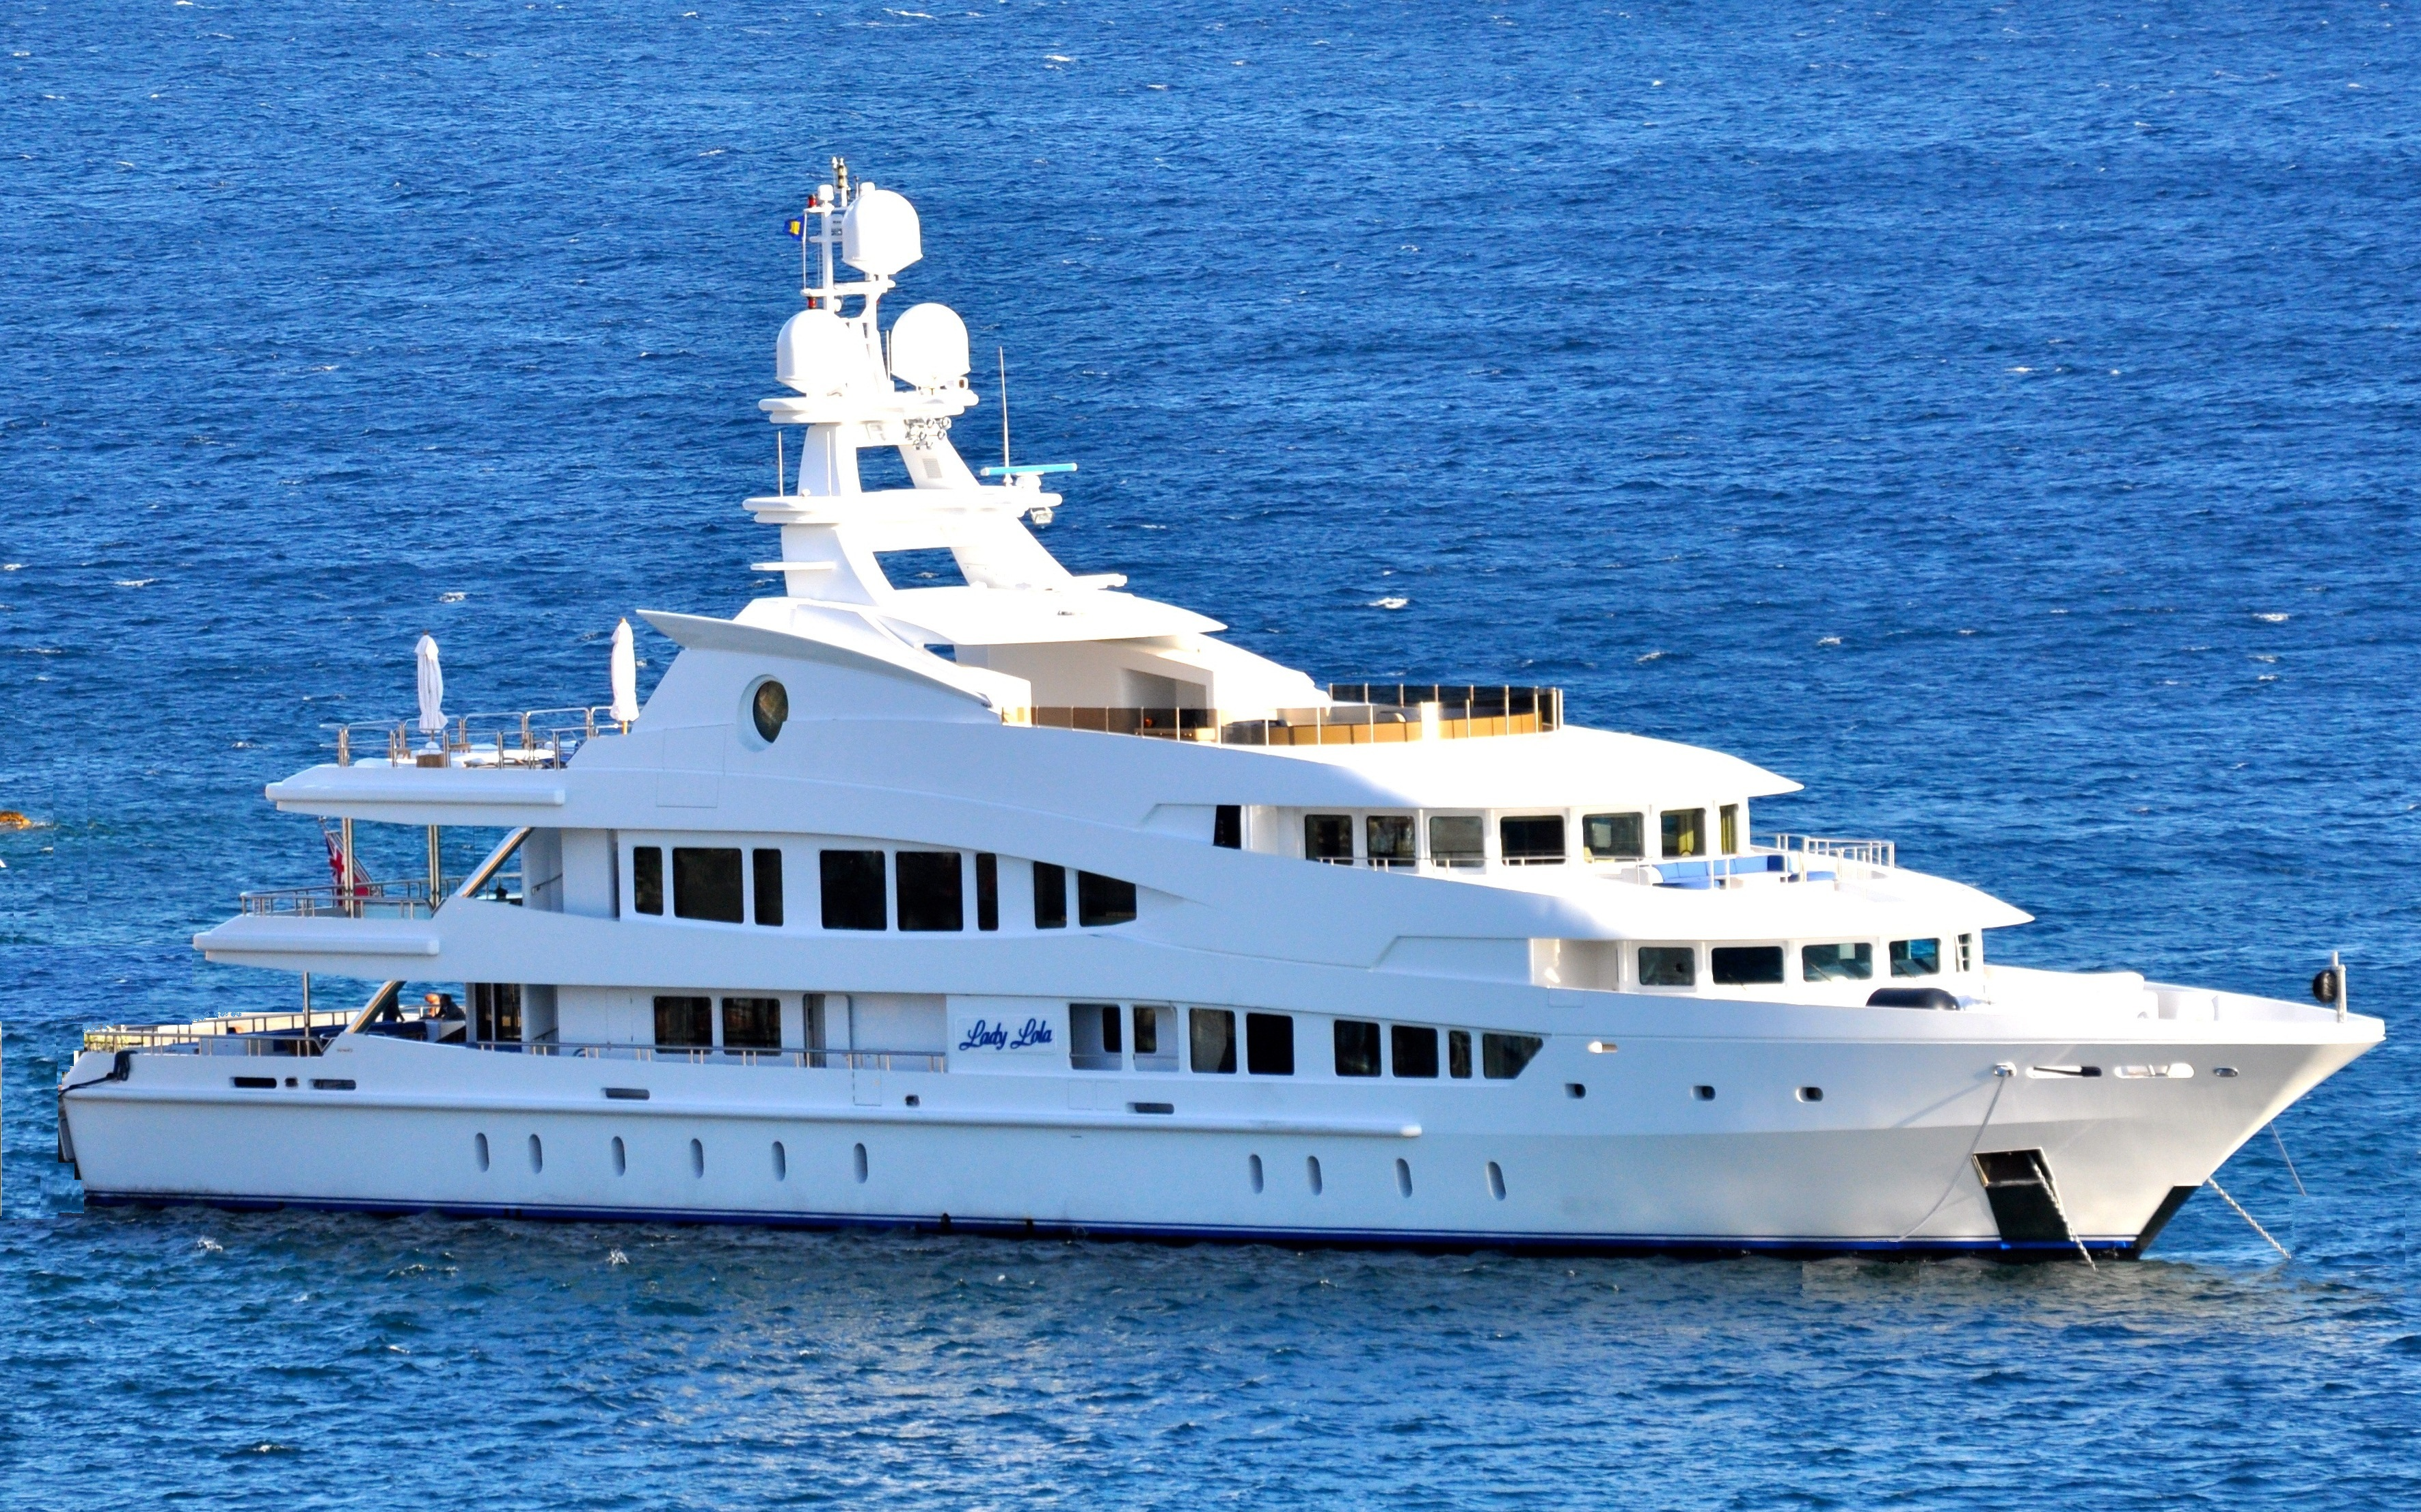 M/Y Lady Lola joins the Fairport Yacht Support fleet